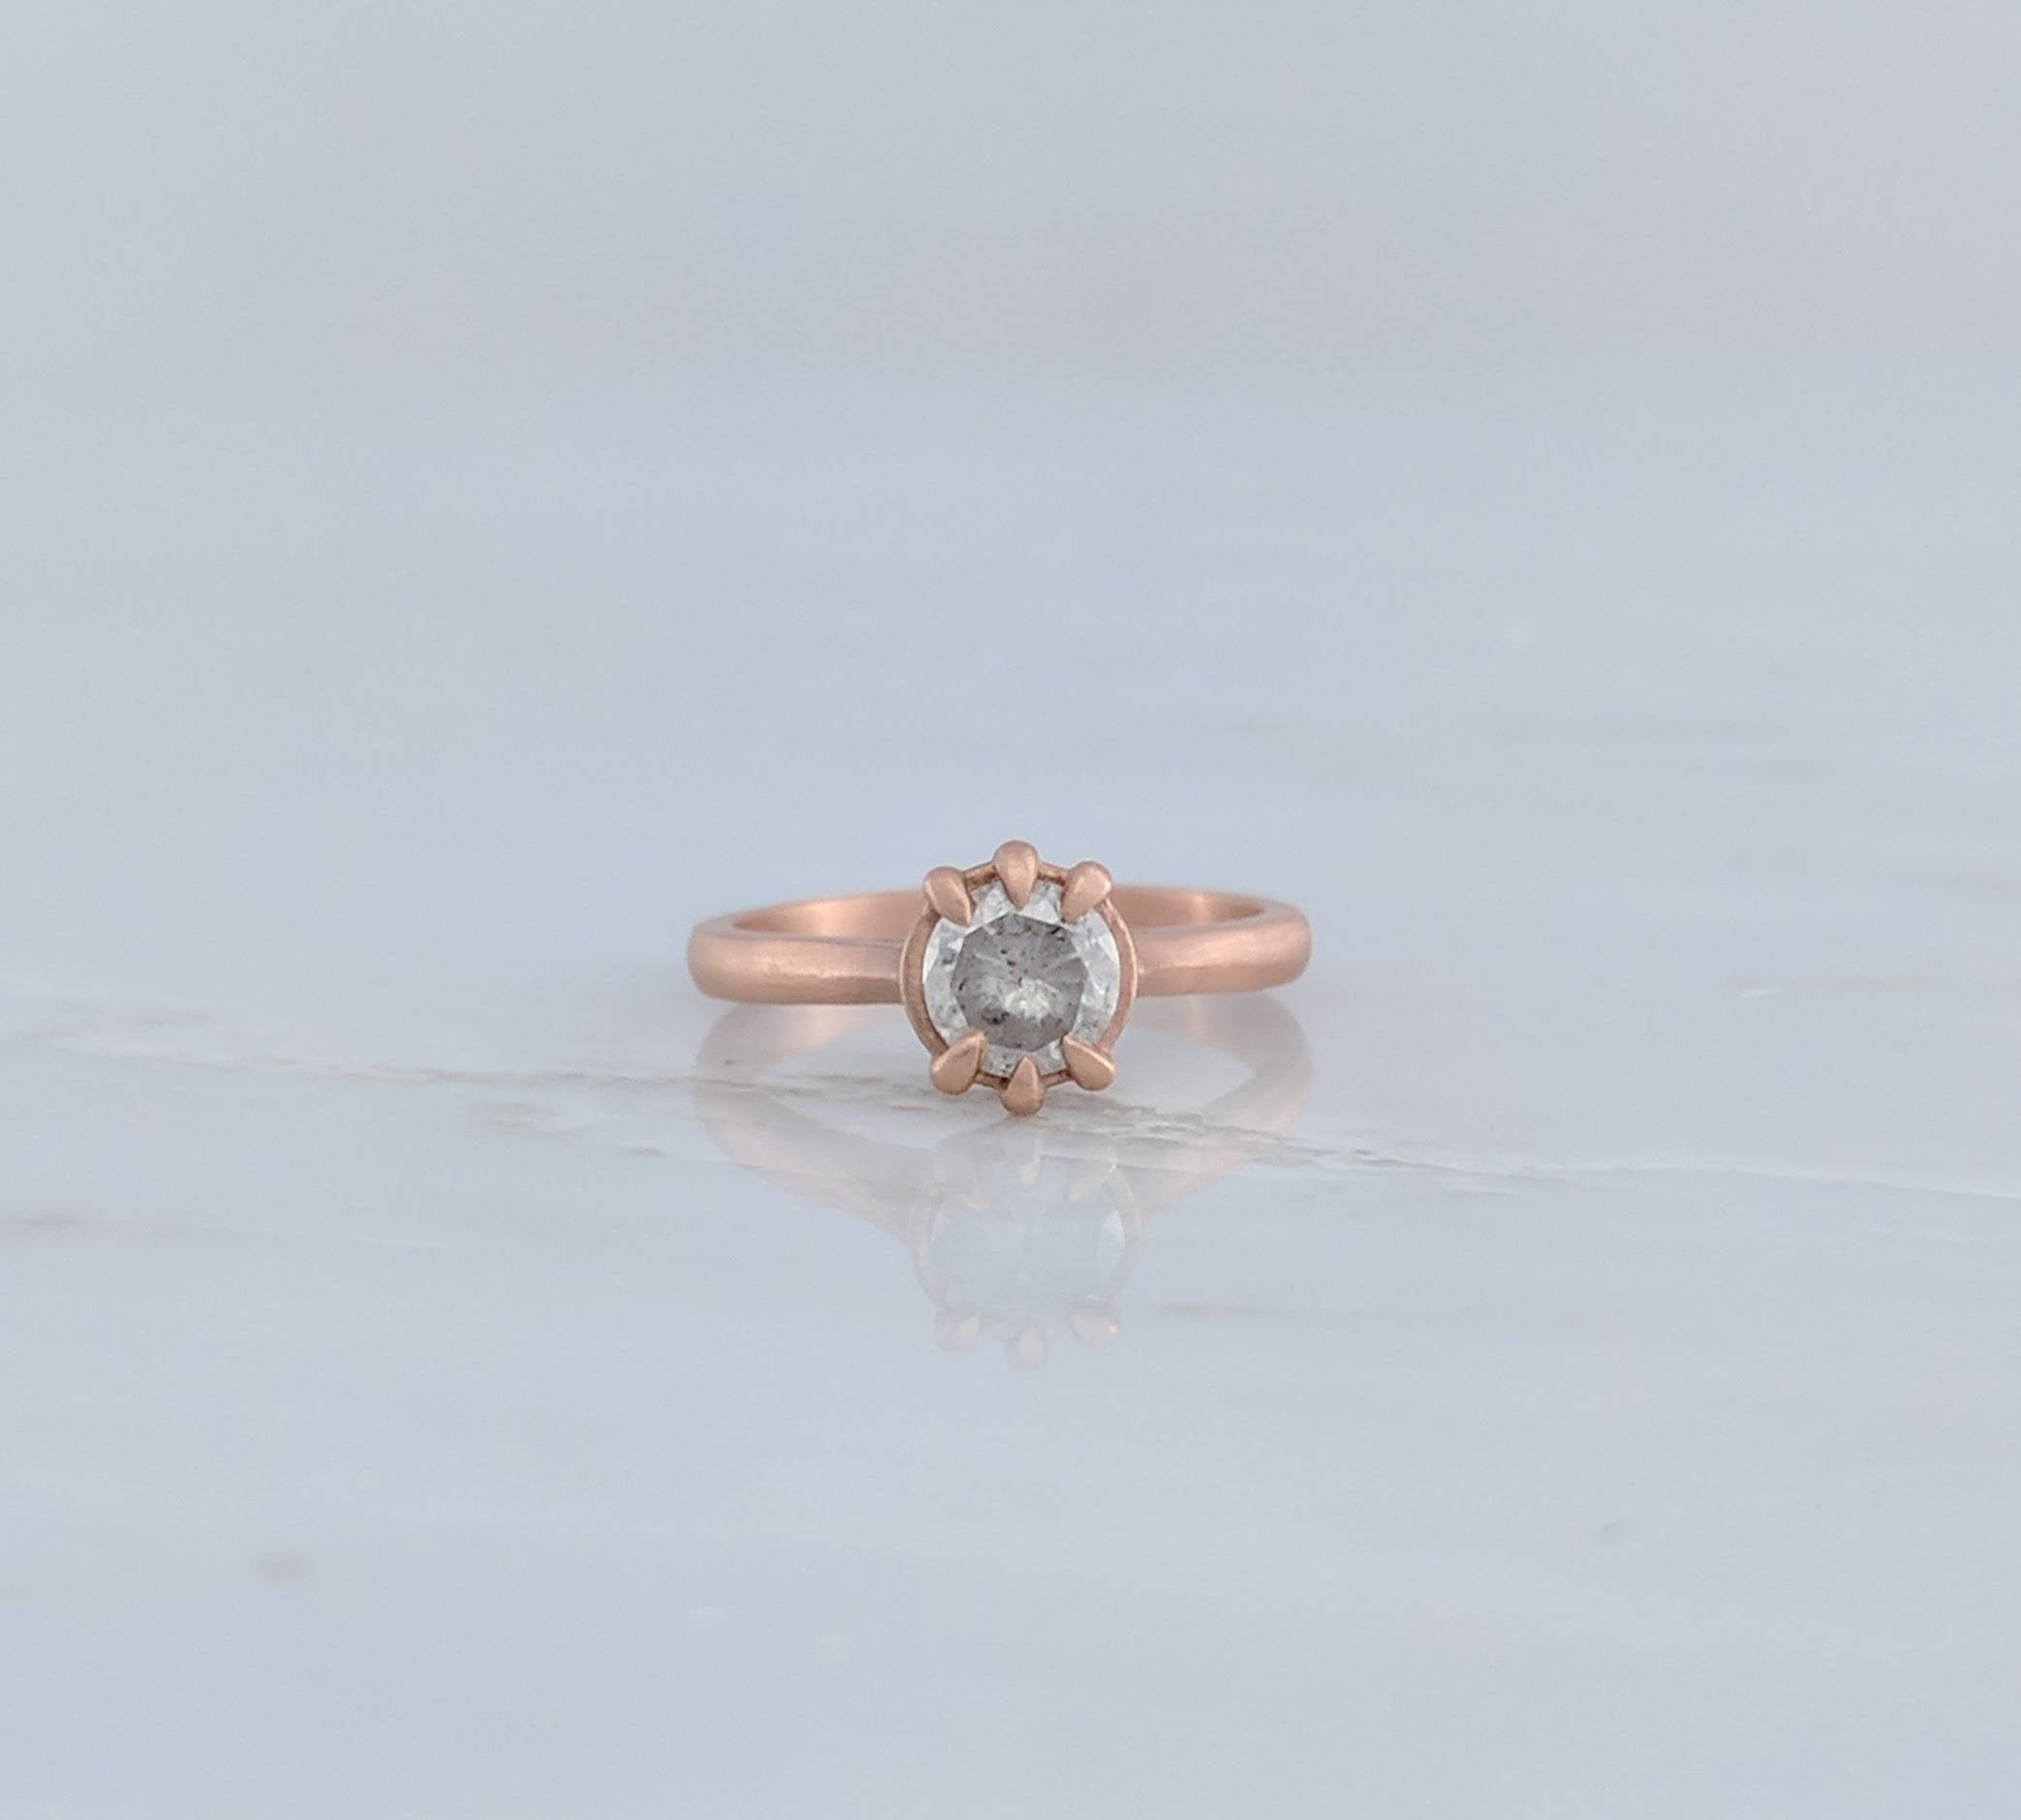 Gray Diamond Ring in Rose Gold